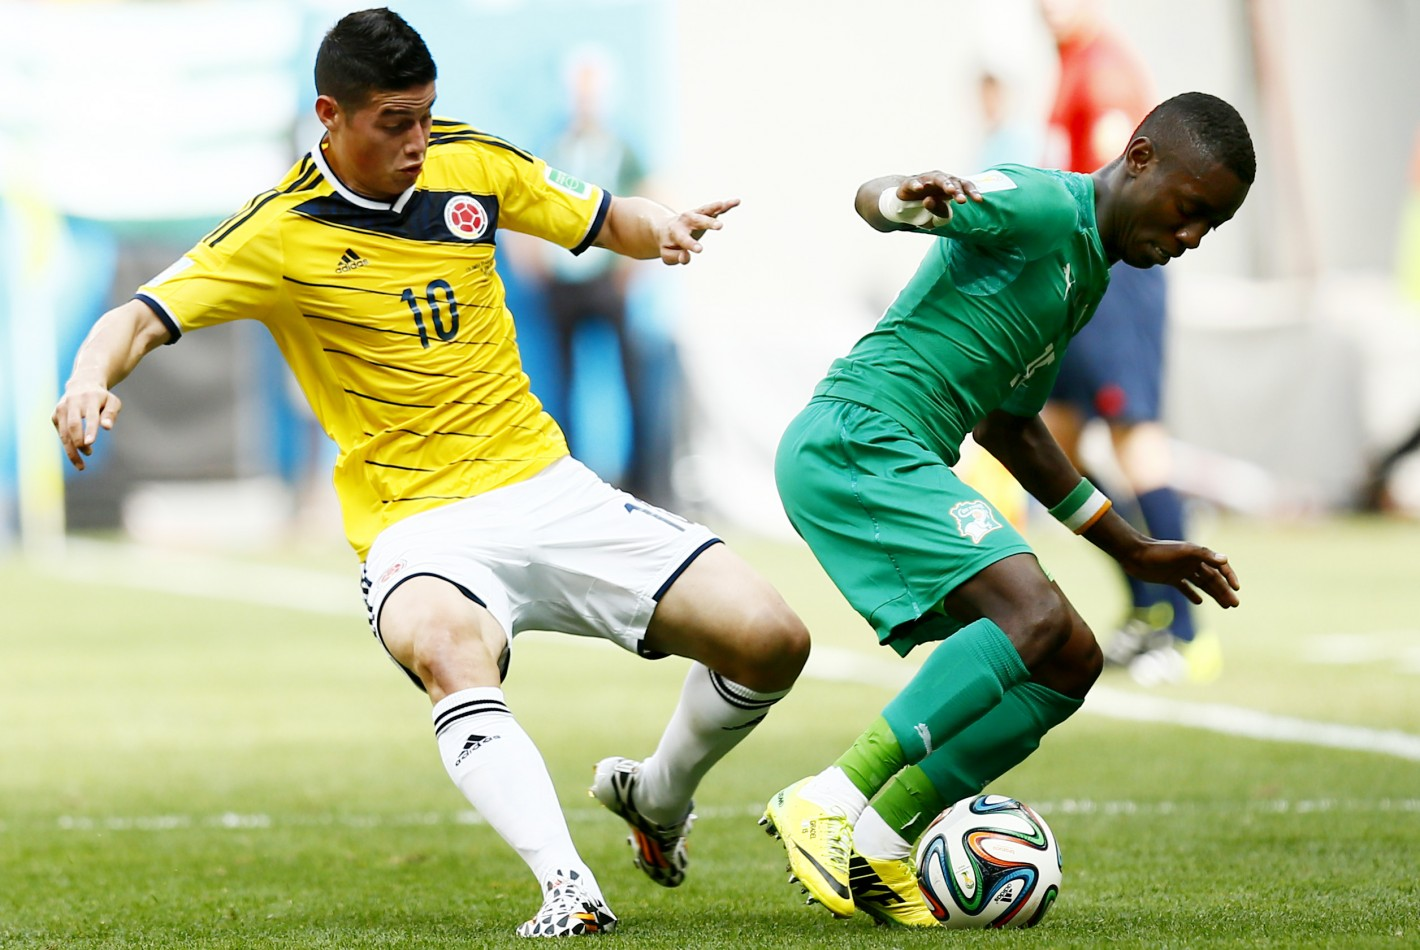 Football - Colombia v Ivory Coast - FIFA World Cup Brazil 2014 - Group C - Estadio Nacional, Brasilia, Brazil - 19/6/14 Colombia's James Rodriguez in action with Ivory Coast's Max Gradel (R) Mandatory Credit: Action Images / Jason Cairnduff Livepic EDITORIAL USE ONLY.